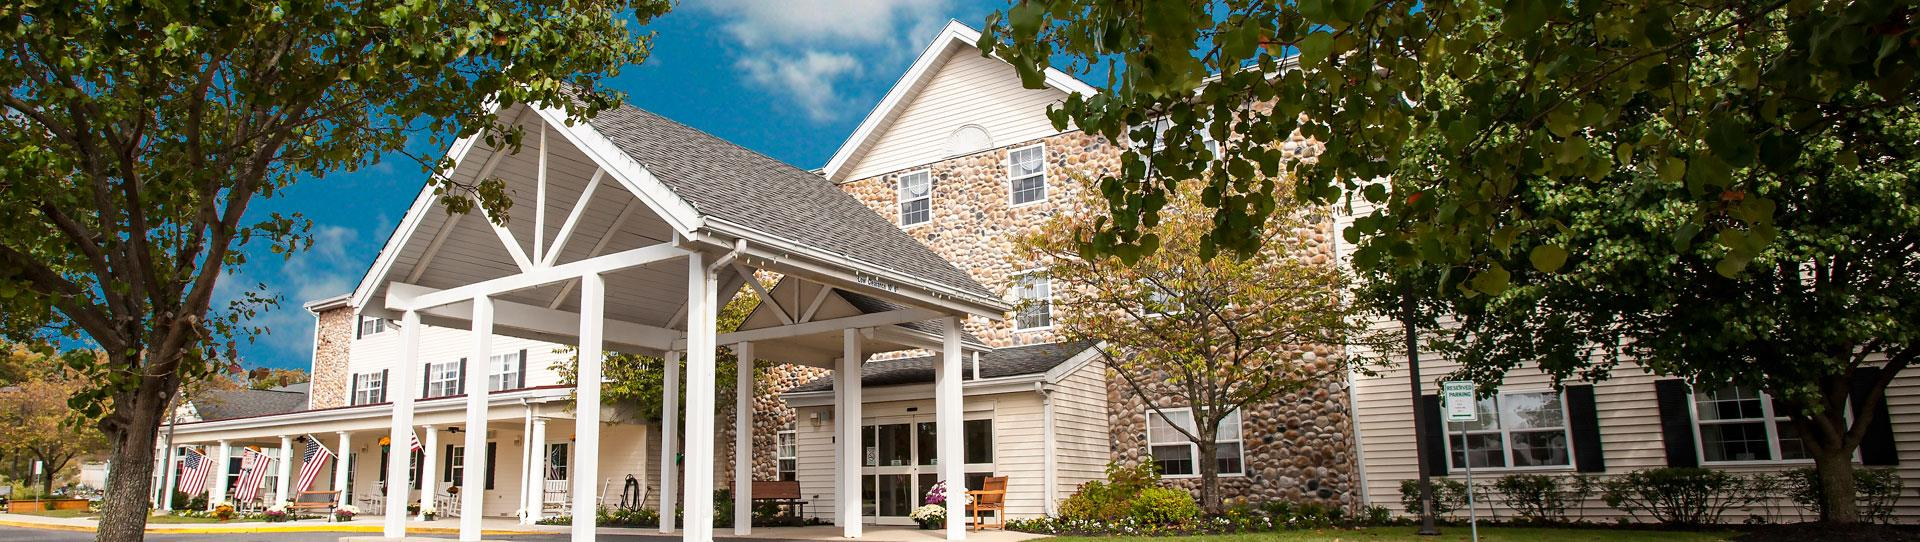 New Jersey's Top Rated Local® Senior Living Communities Award Winner: Washington Township Senior Living